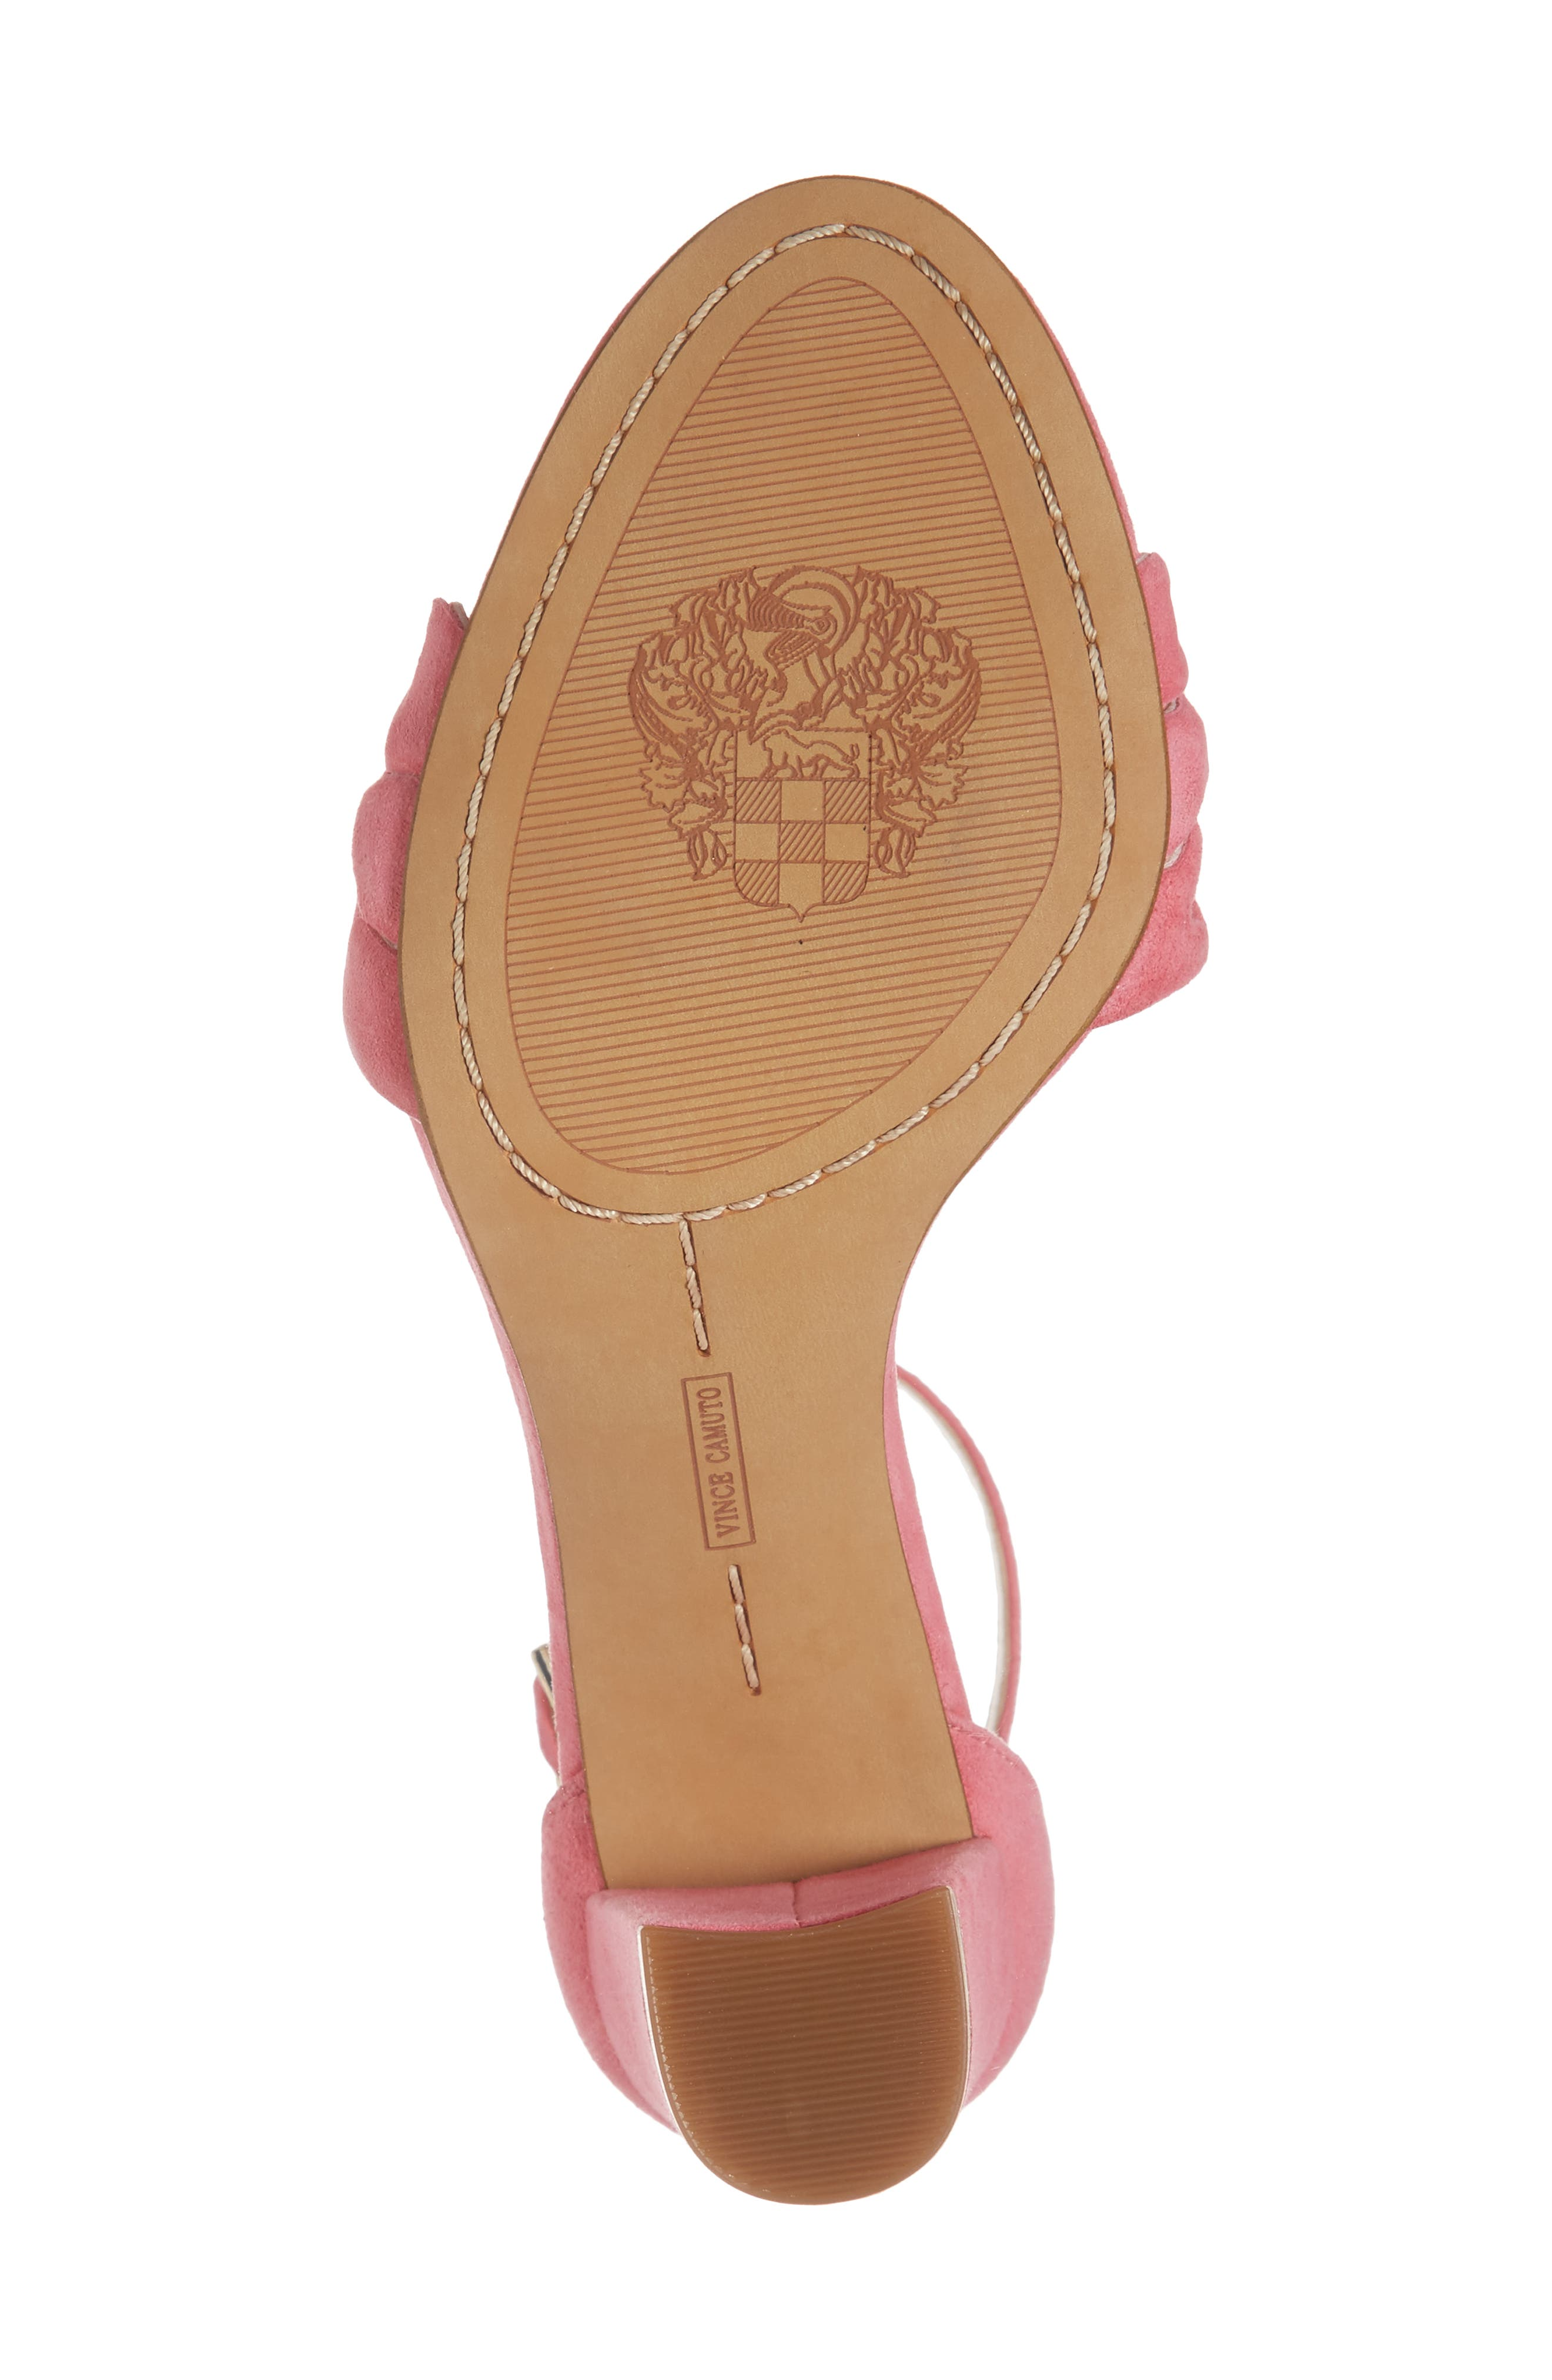 Caveena Block Heel Sandal,                             Alternate thumbnail 6, color,                             Soft Pink Suede